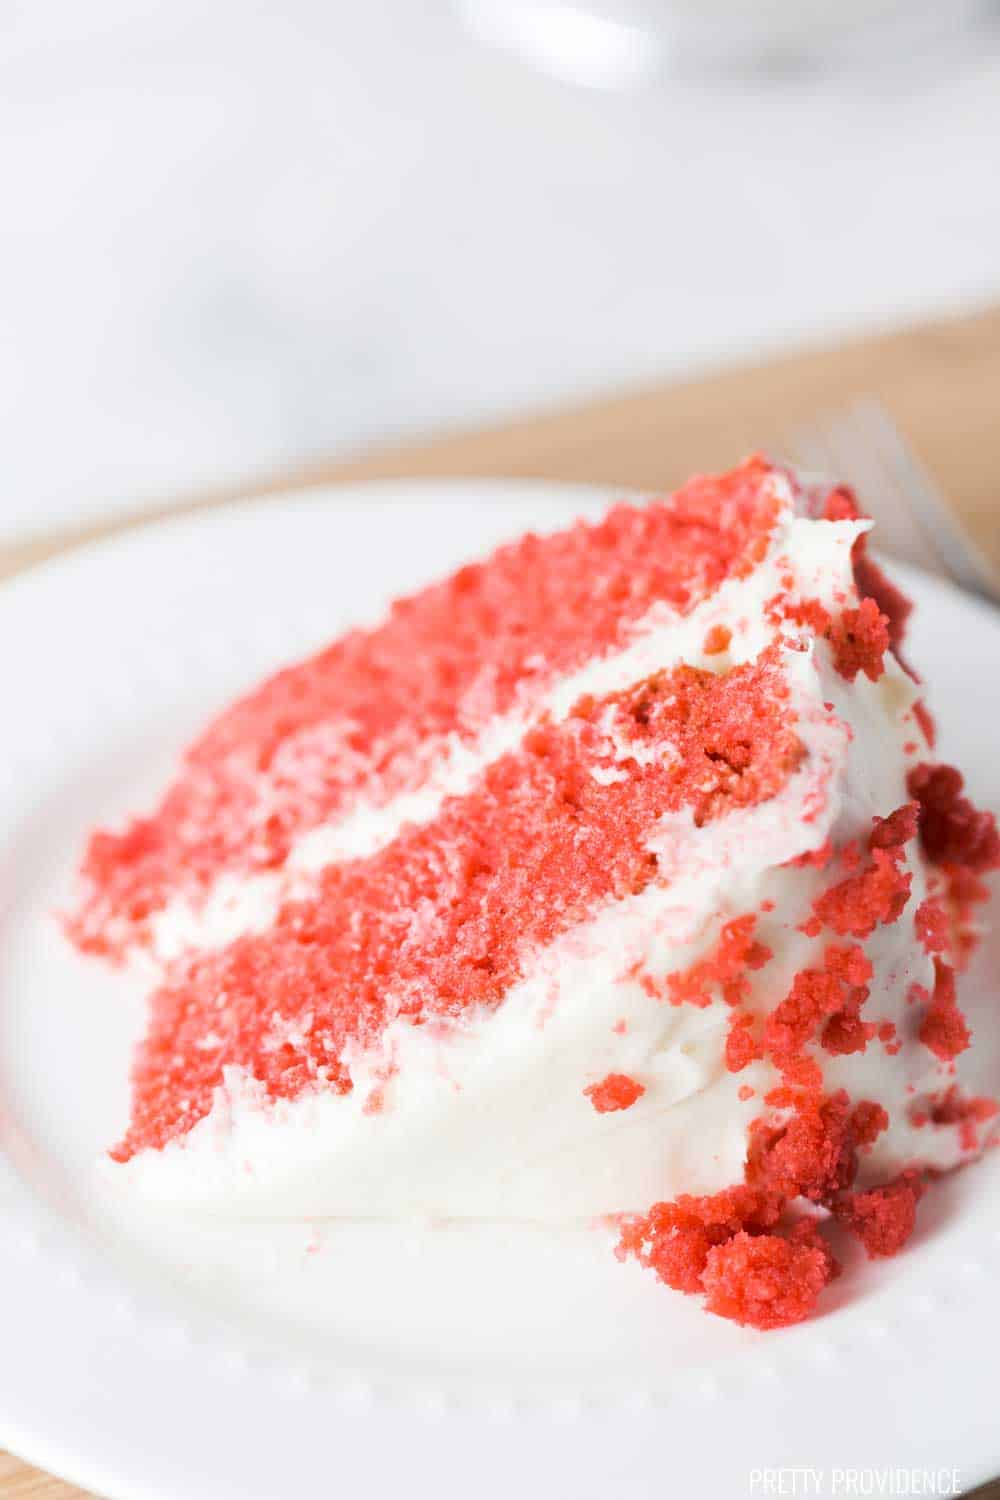 This is the best red velvet cake I have ever had. So dang moist and delicious, you'll never make a red velvet box mix again!